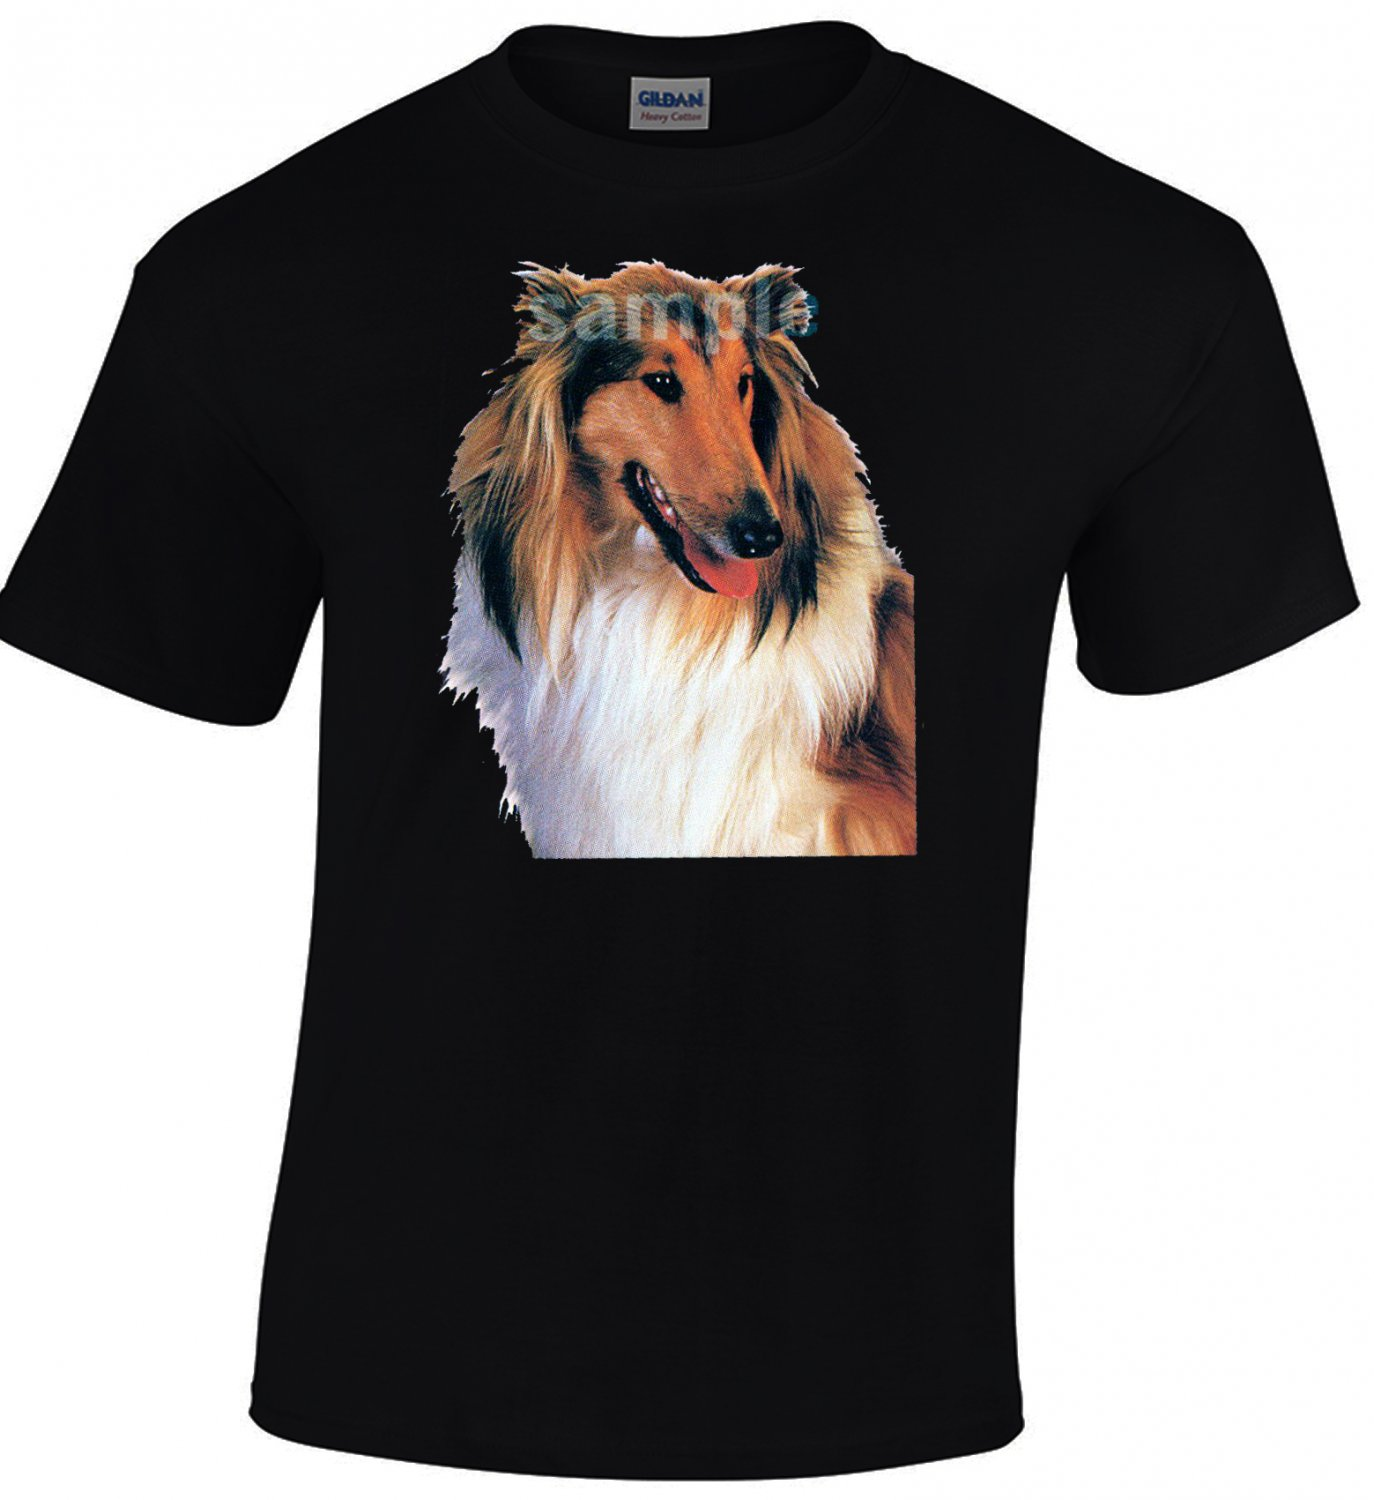 Collie Lassie T-shirt Dog Lovers Tshirt Cool Unisex Top Tee